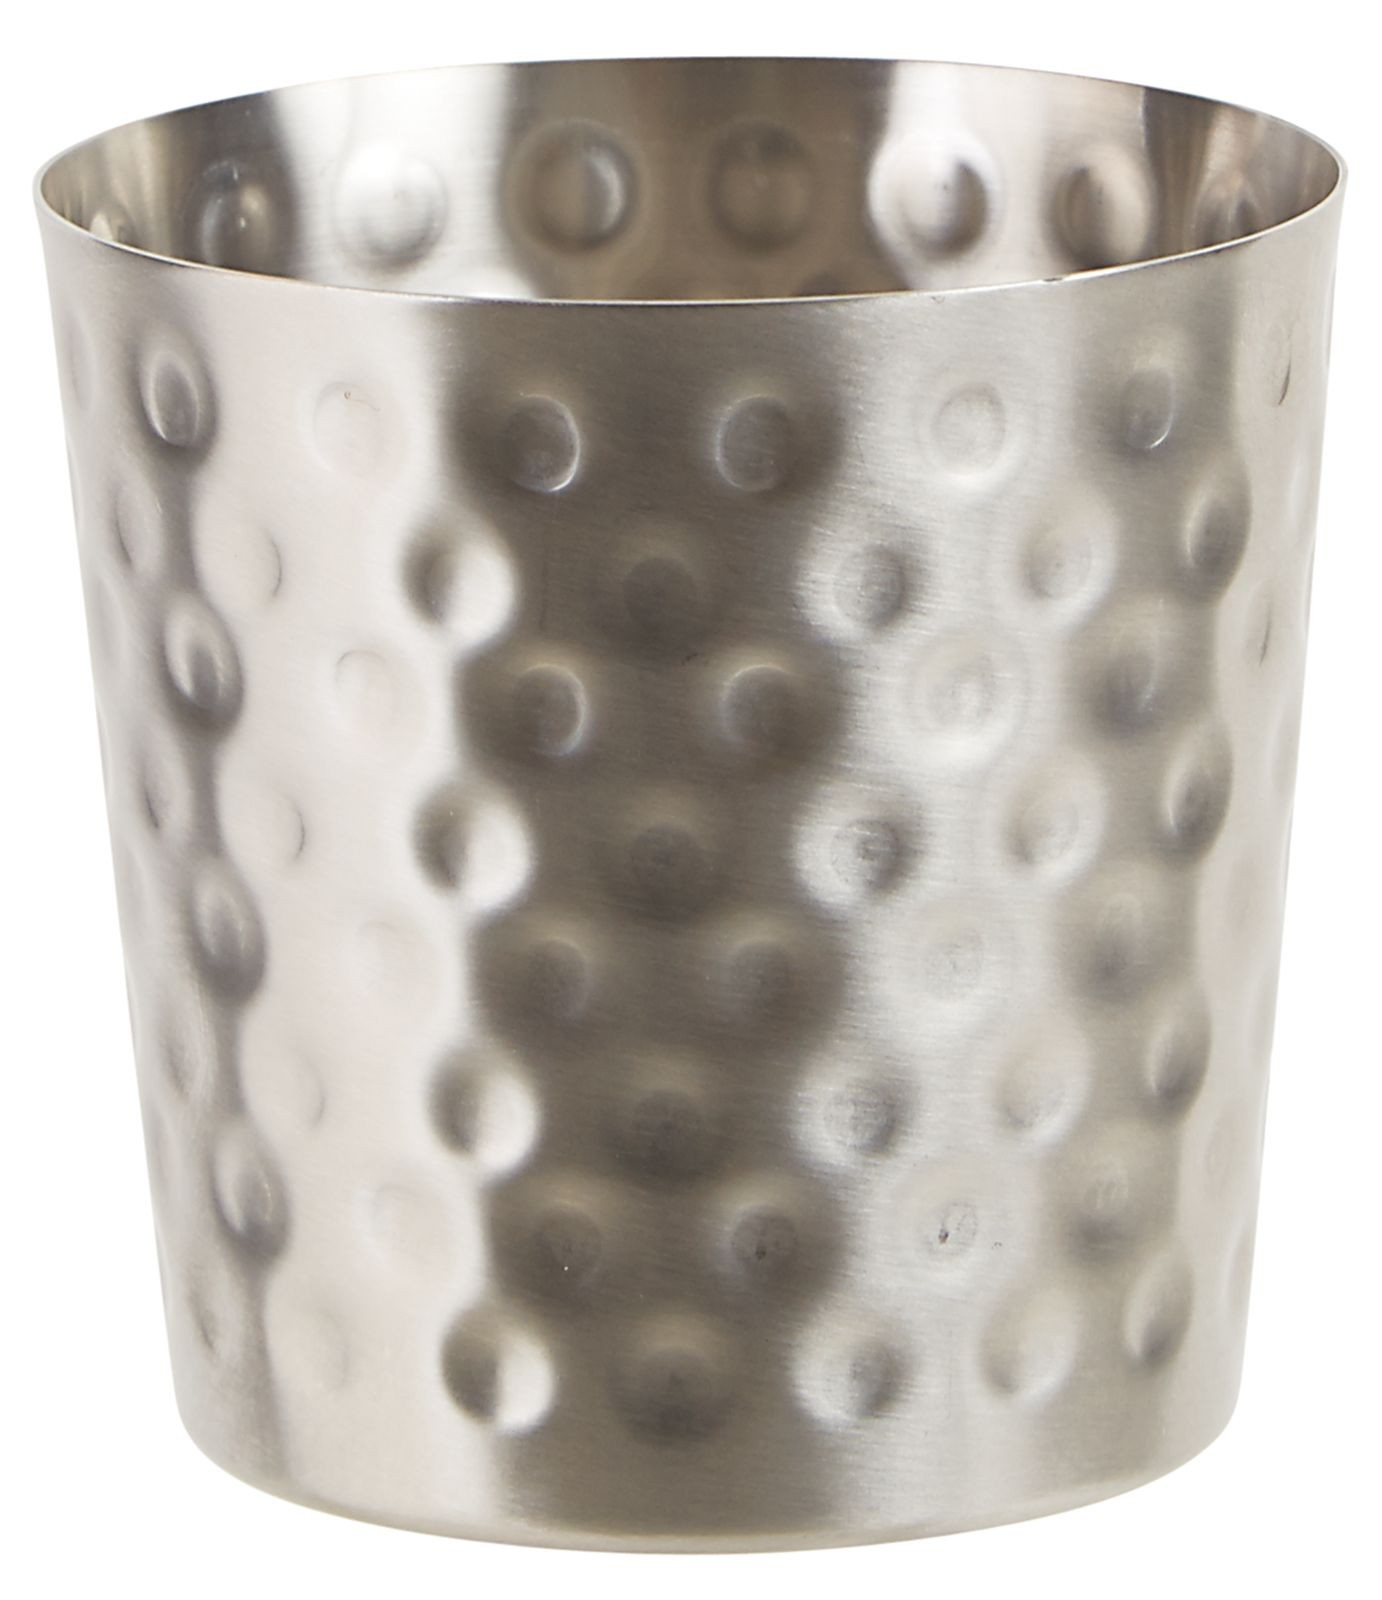 "Winco SFC-35H 3.25"" Dia. Stainless Steel Fry Cup with Hammered Finish"